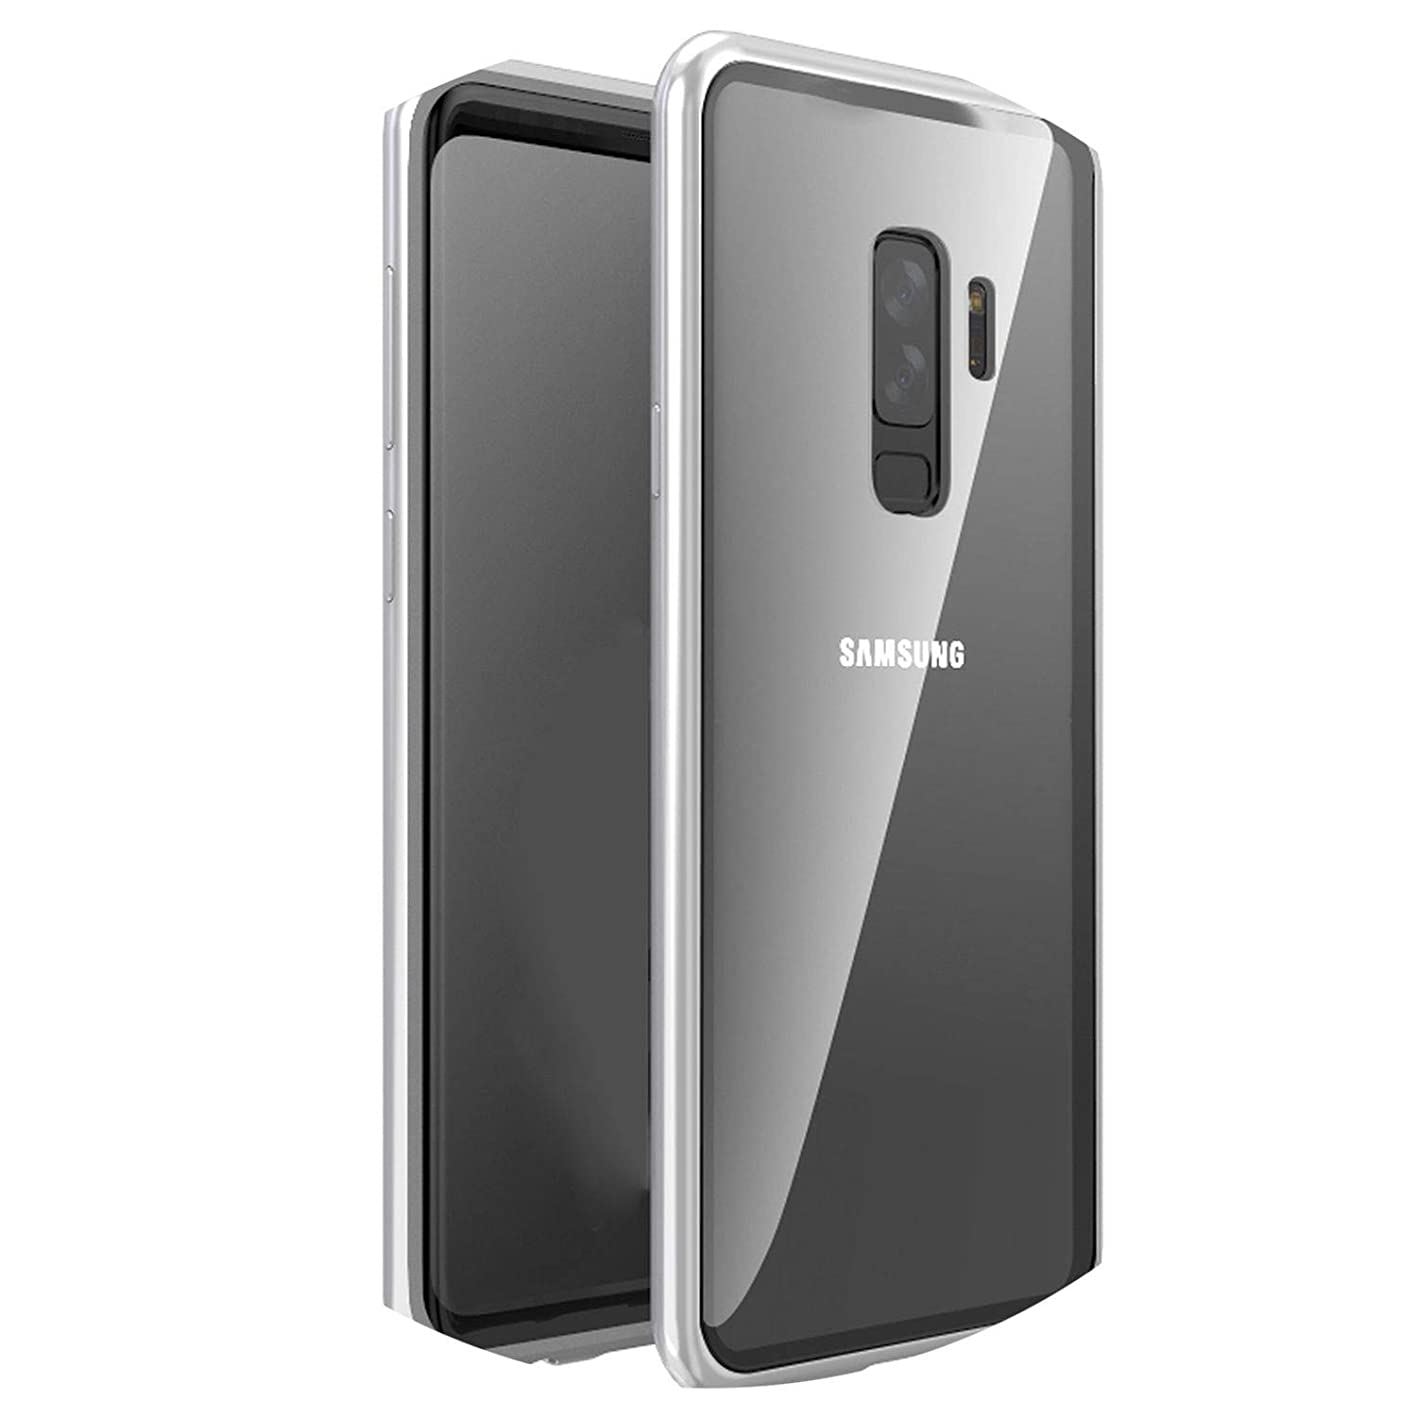 Adsorption Phone Case for Samsung Galaxy S9 S8 Plus Note 9 8 Metal Magnet Screen Protector Tempered Glass Flip Cover,Silver,for Mate 20 Lite,No Front Glass mdyvhwjalqc901